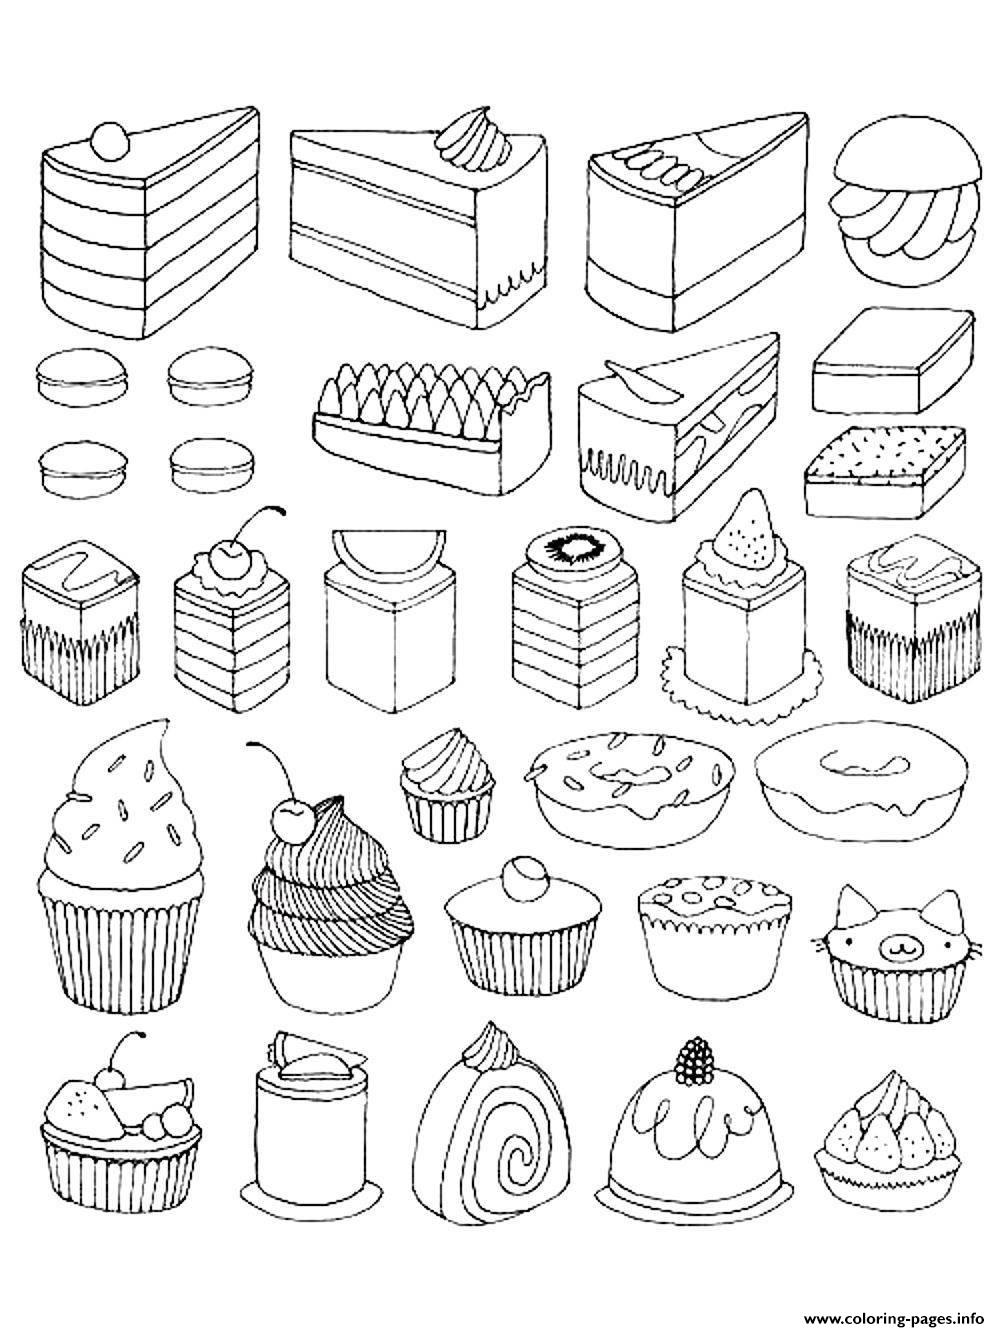 Adult Cupcakes And Little Cakes Coloring Pages Printable